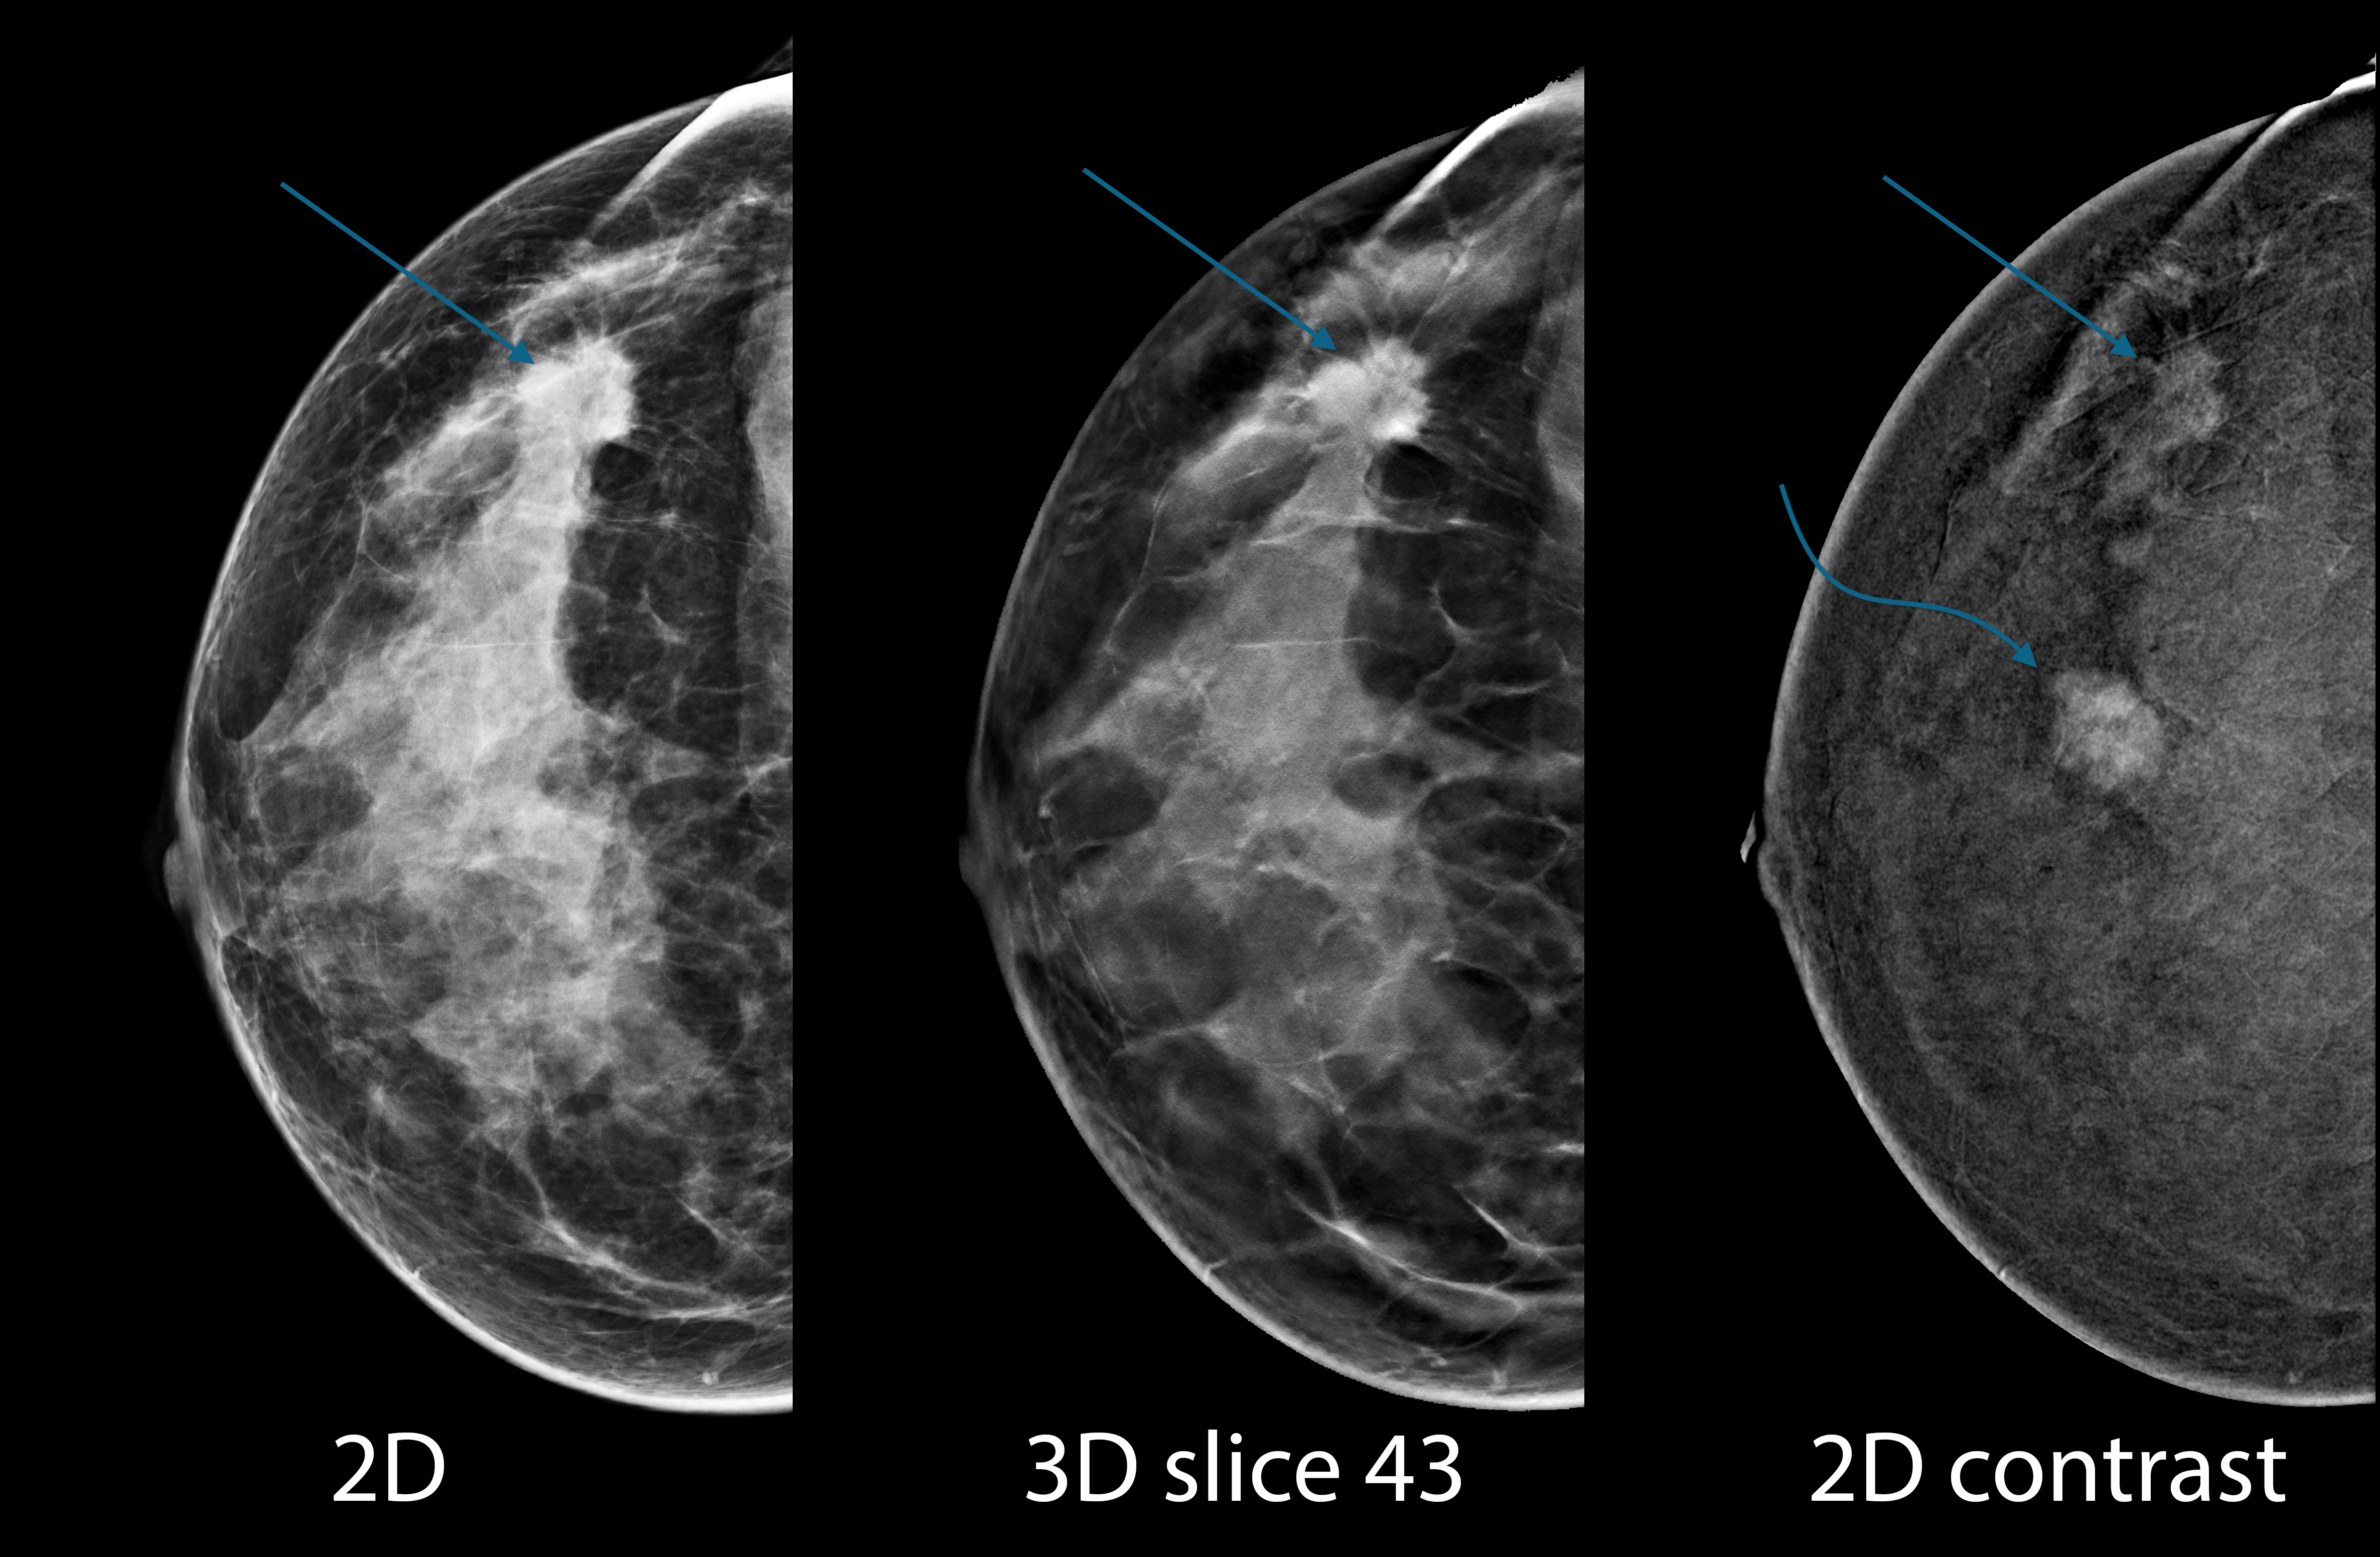 scatter radiation digital tomosynthesis breast 36, 1199 (2009) 101118/13090889 scatter radiation in digital tomosynthesis of  the breast med phys 34, 564 (2007) 101118/12428404.